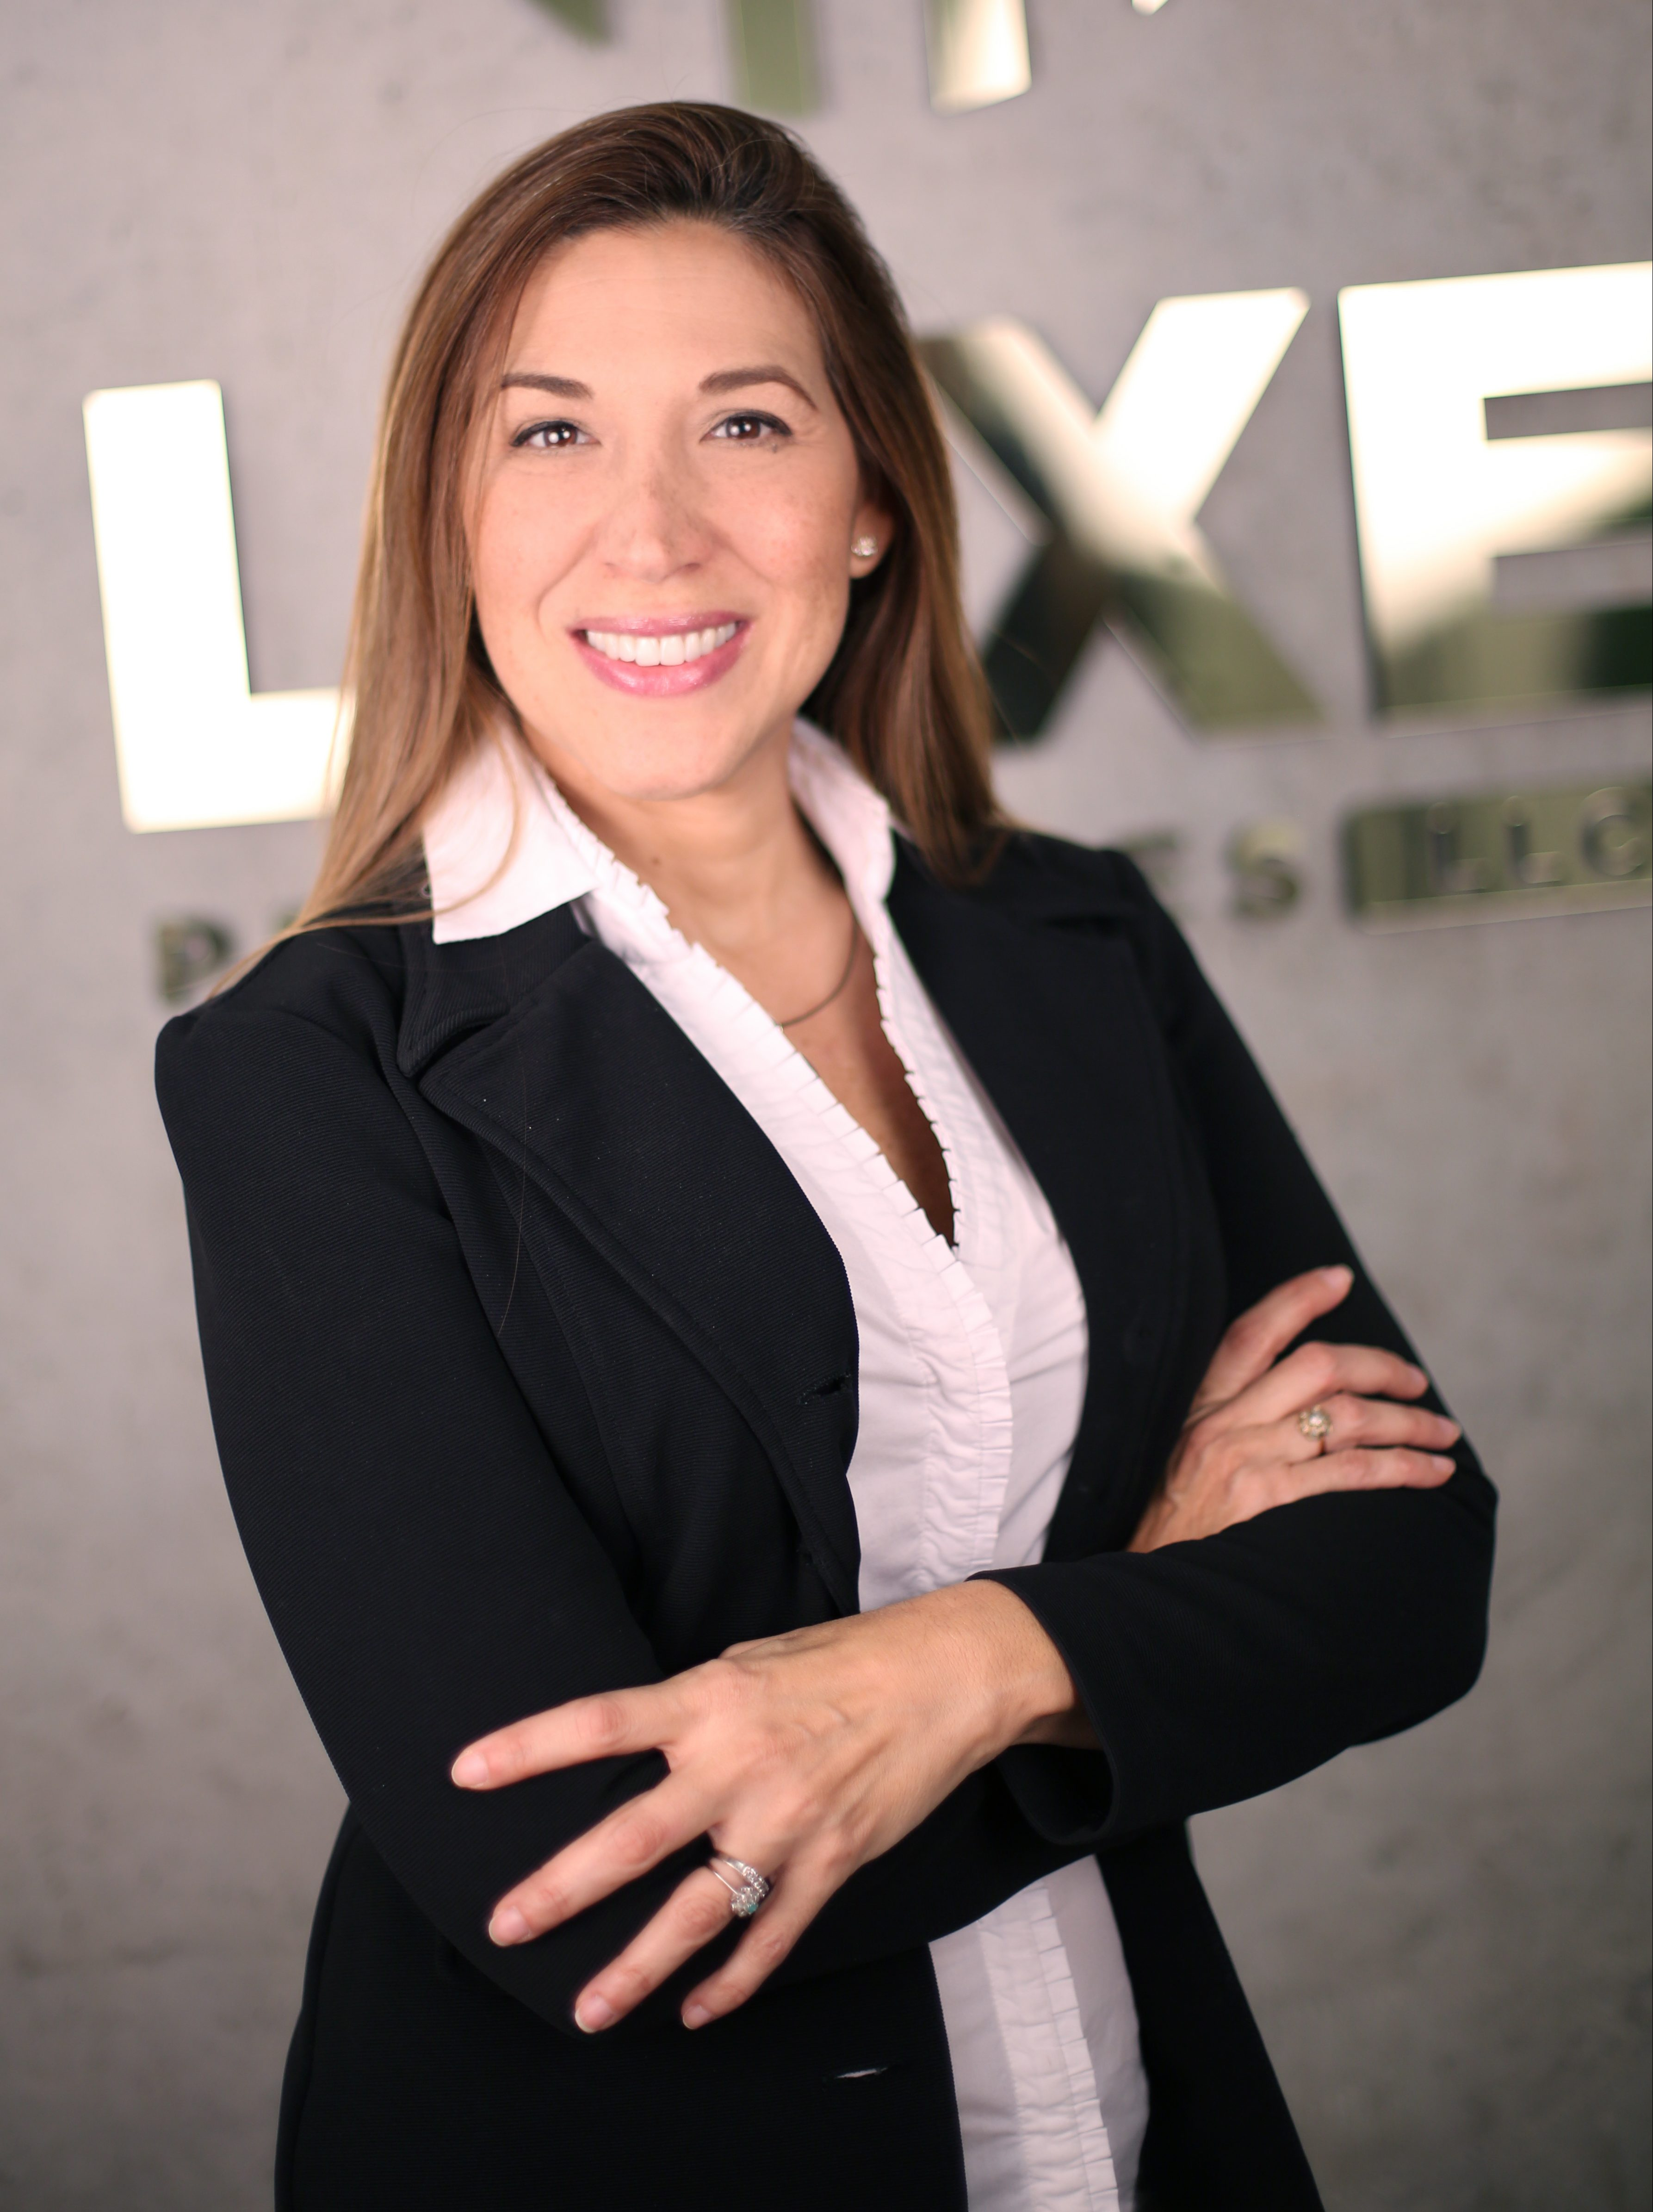 Laura Robles